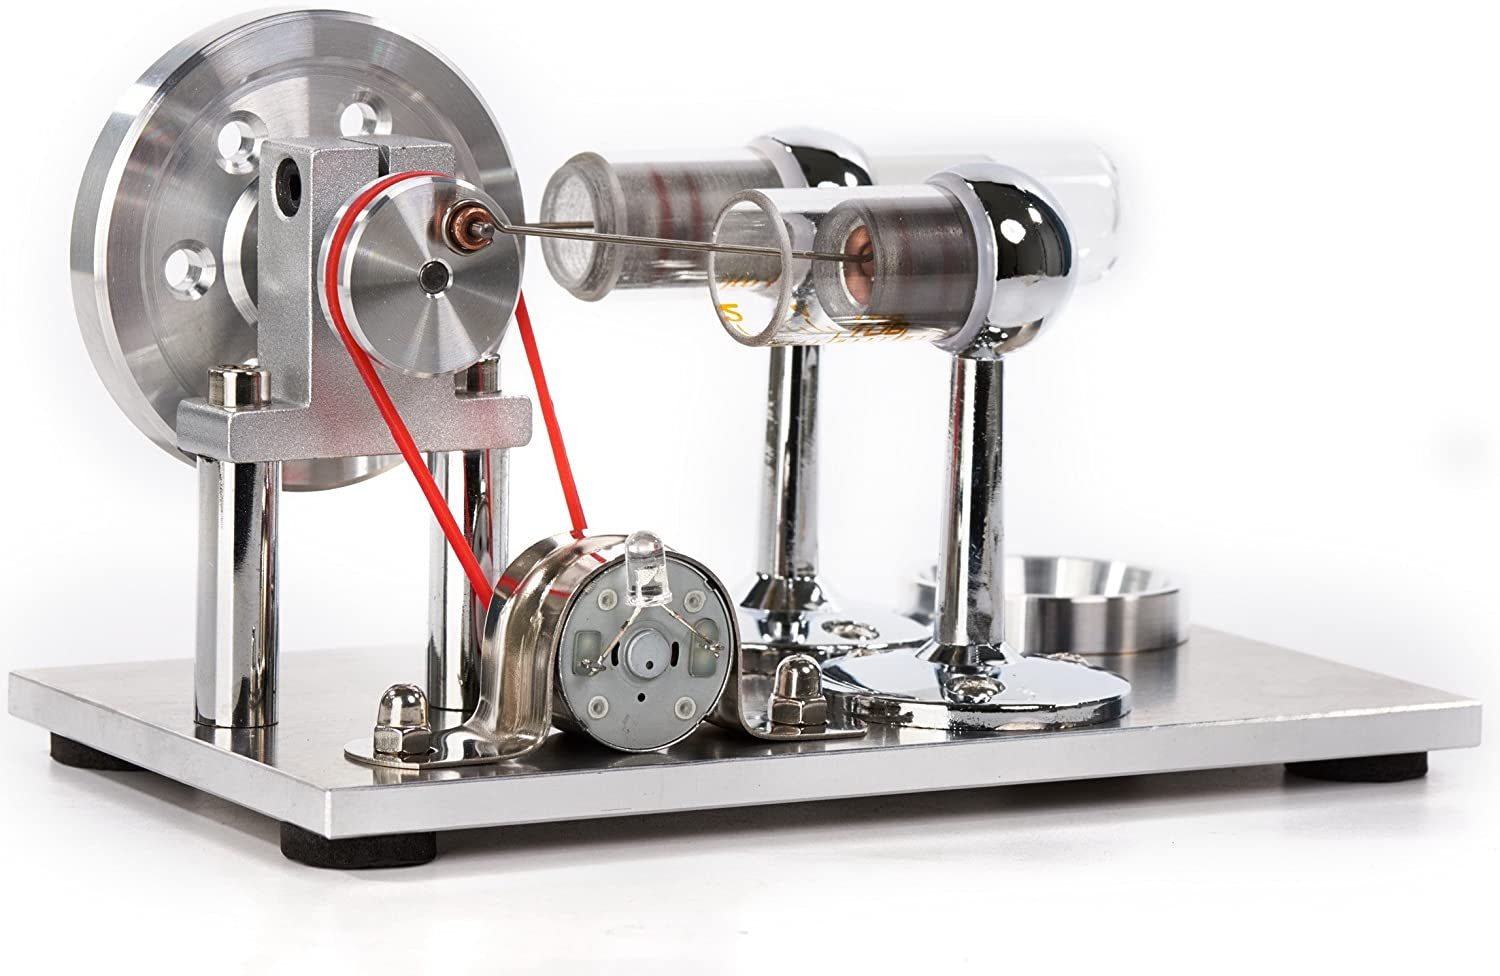 Sunnytech Hot SALENEW very popular Air Stirling Engine Toy Motor El Model Popular products Educational